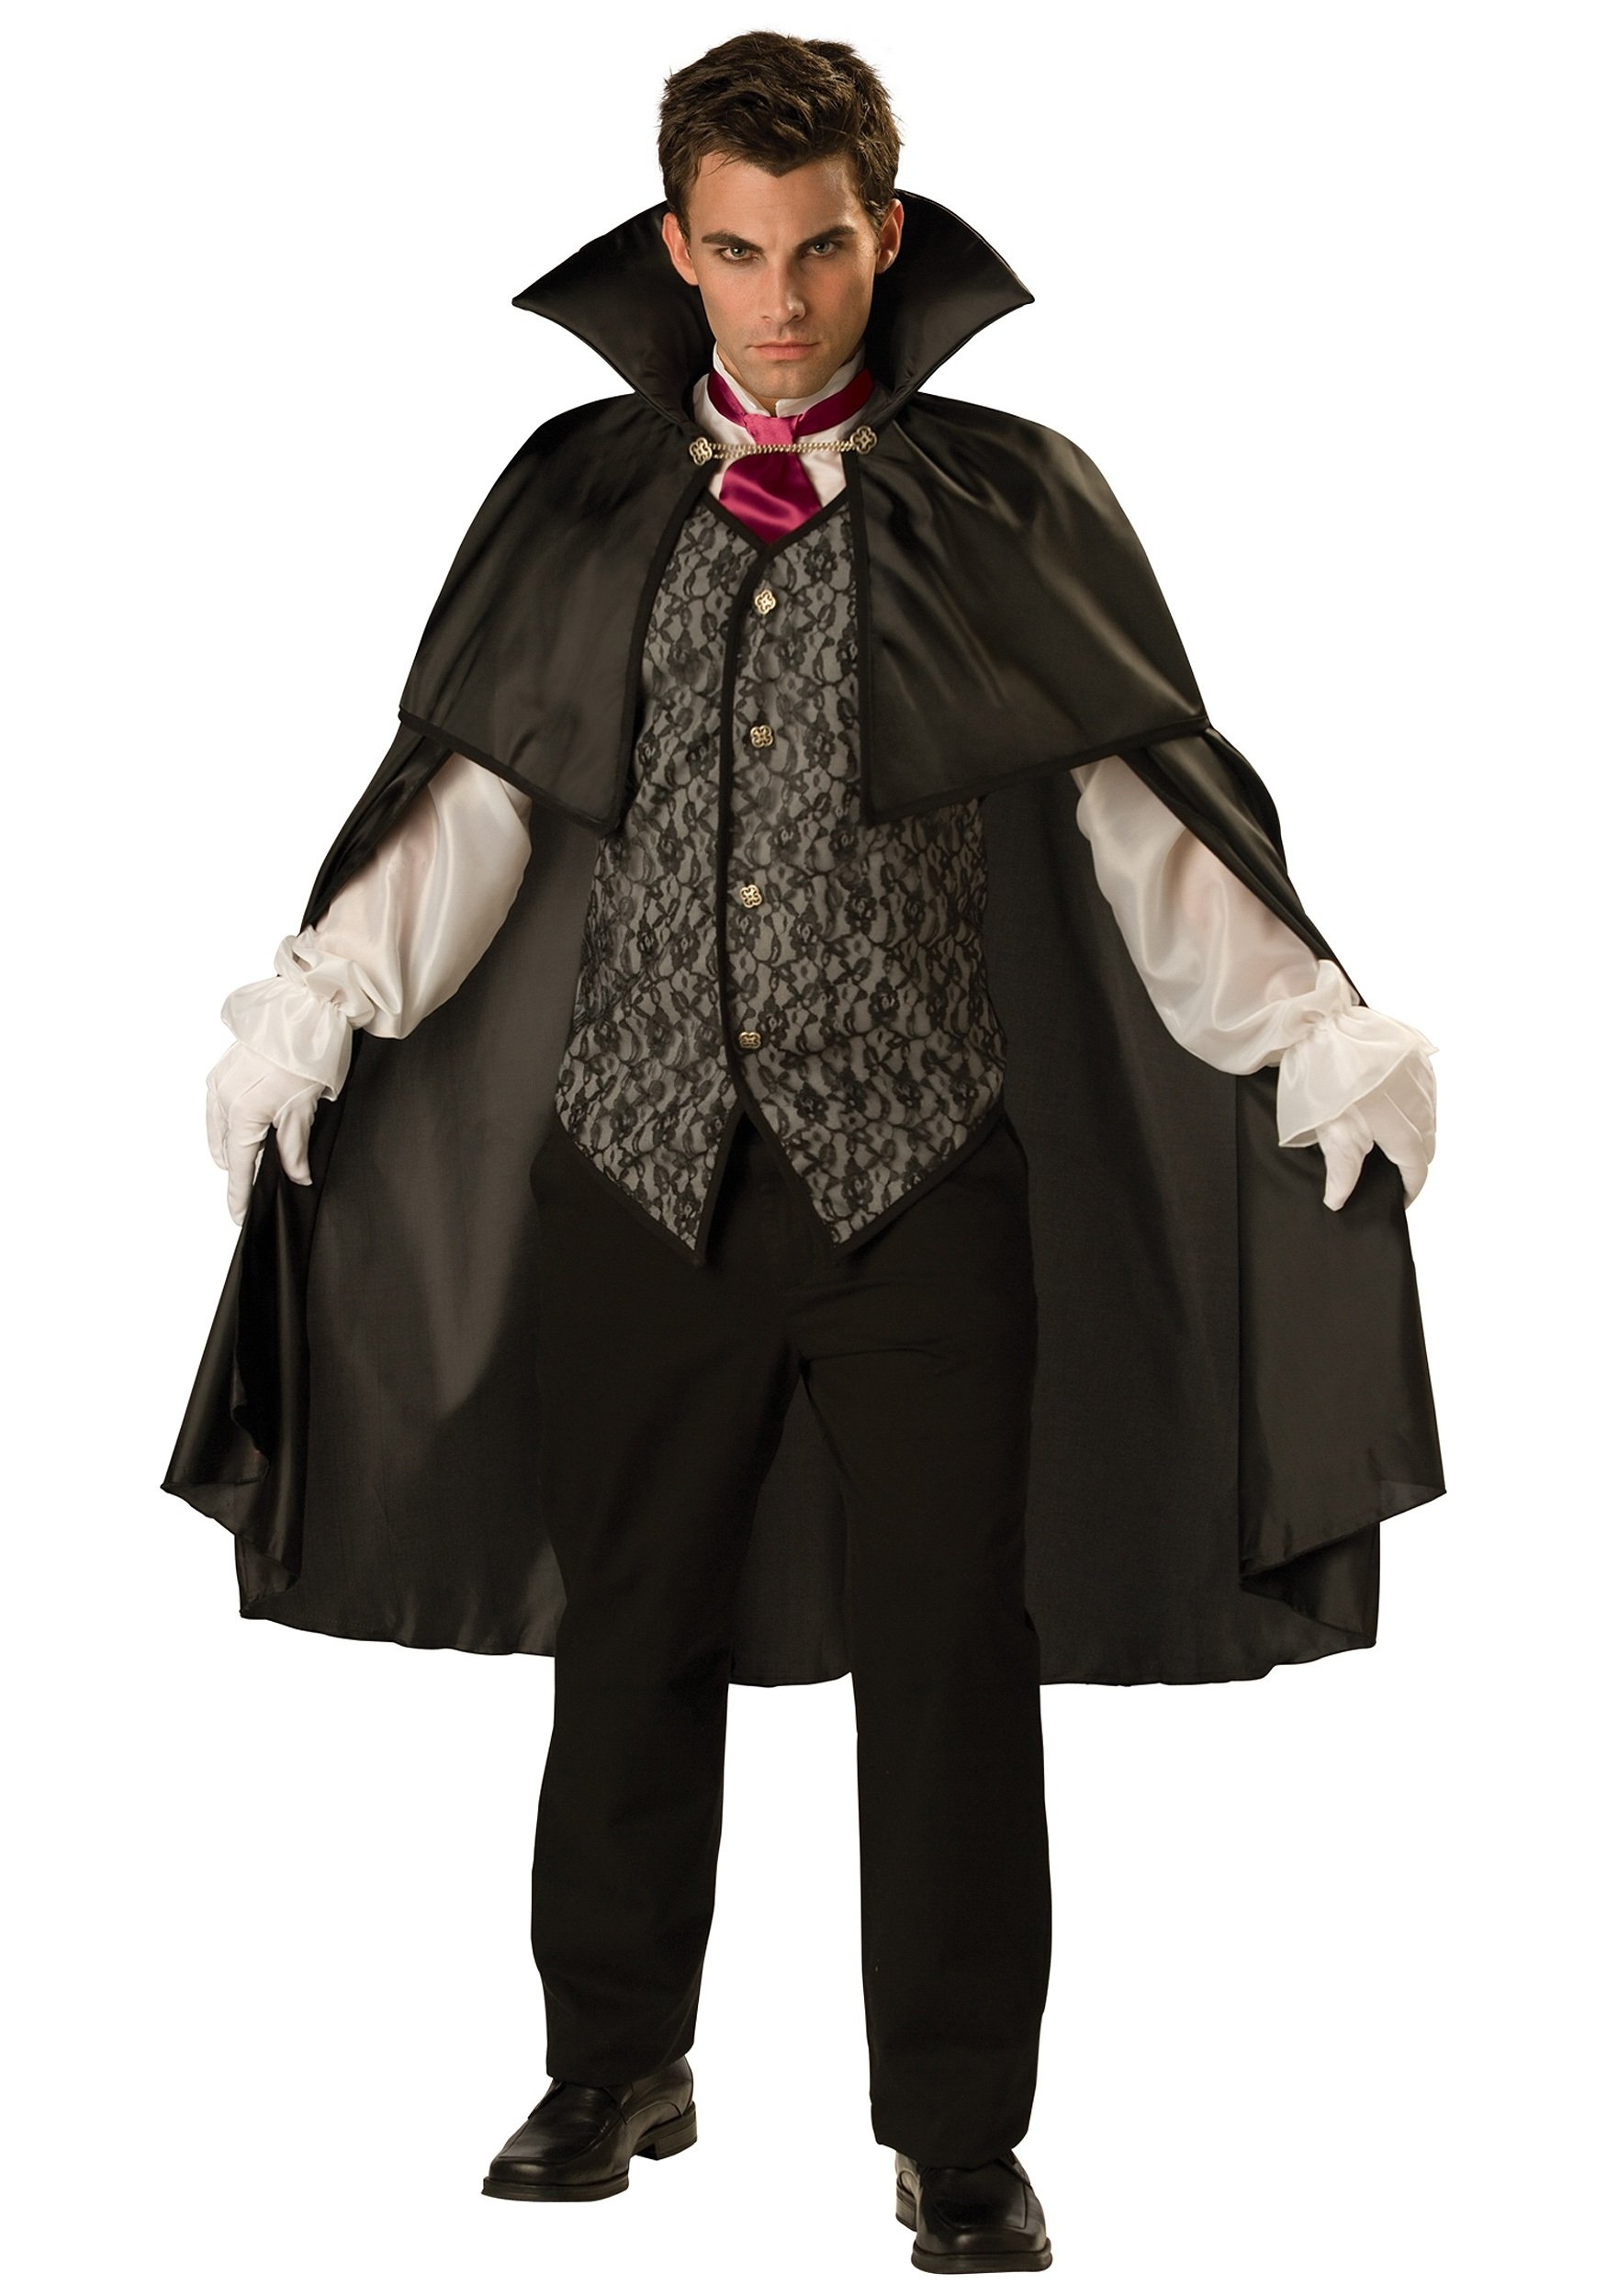 10 Ideal Scary Costume Ideas For Men mens classic midnight vamp costume mens scary costume ideas 2020